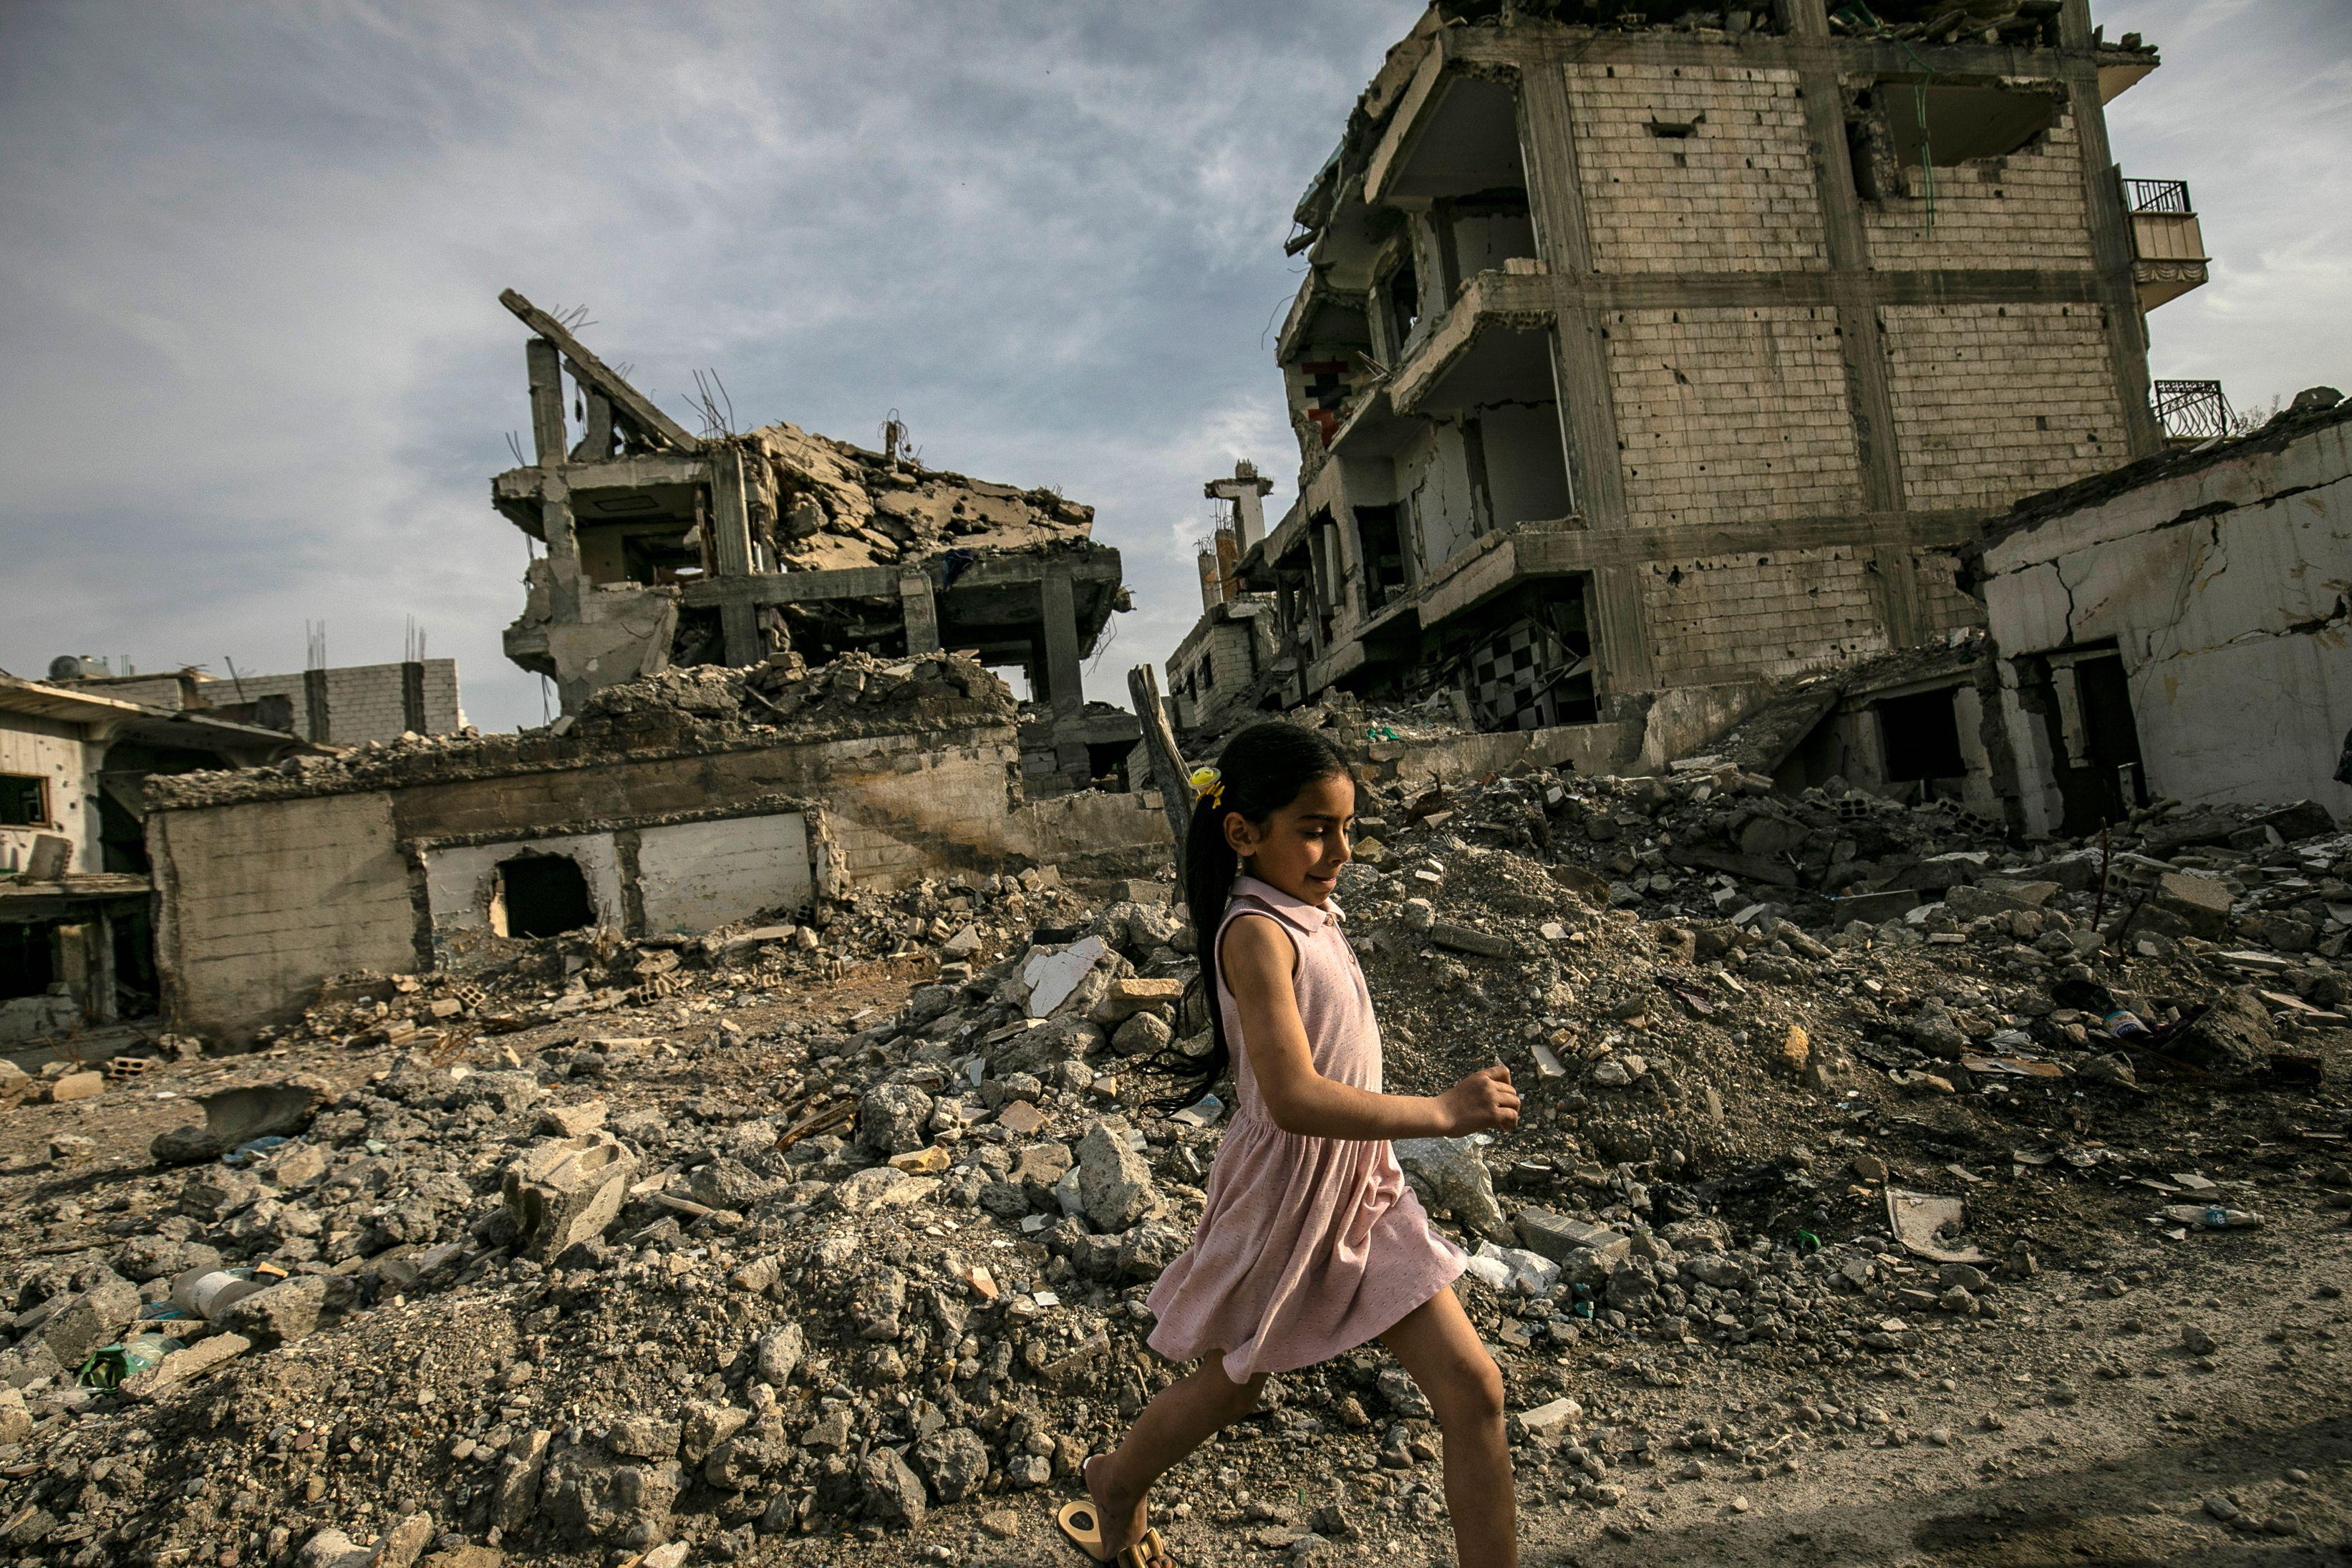 A girl in a pink dress walks in front of rubble and destroyed buildings.